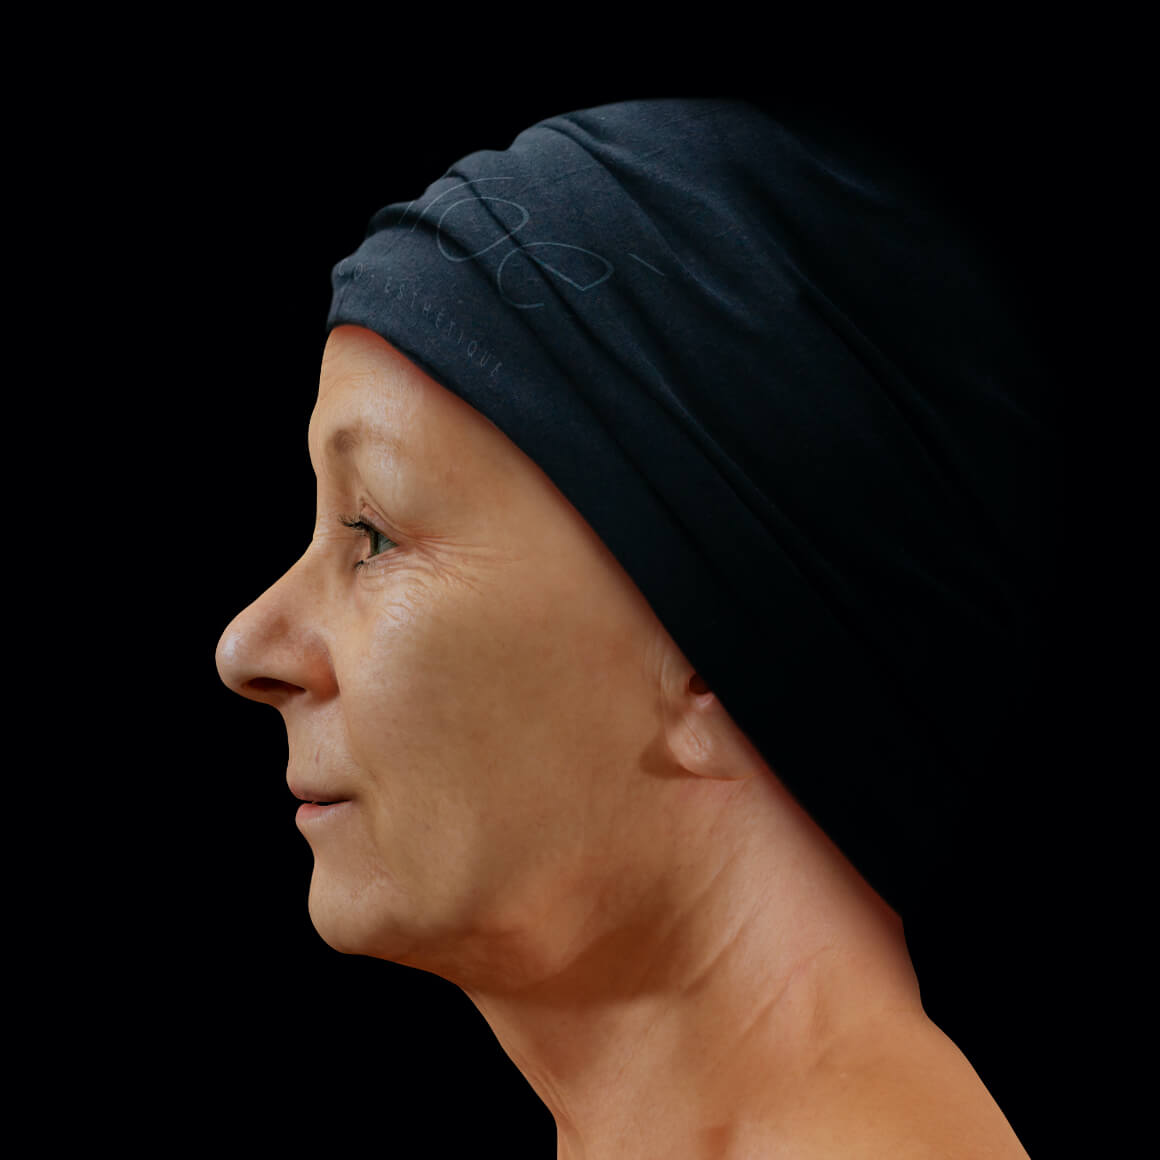 Woman, patient at Clinique Chloé, positioned sideways, showing fine lines and wrinkles on the face